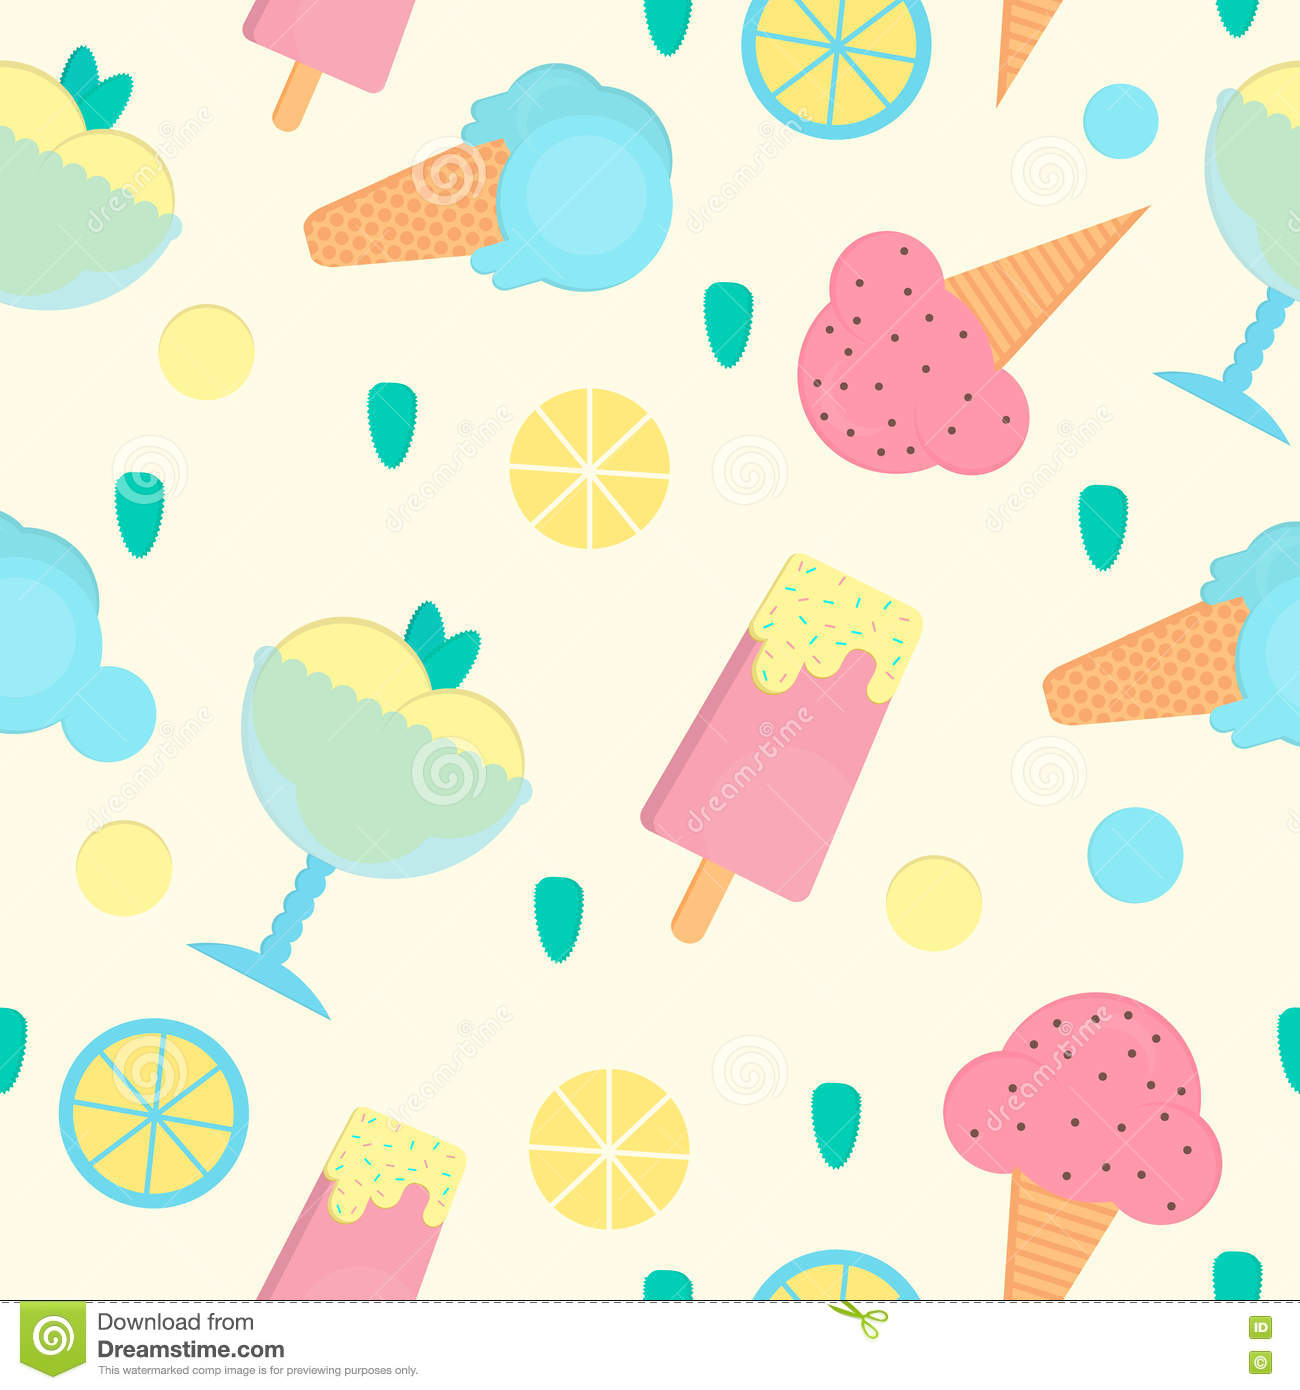 Sweet Ice Cream Flat Colorful Seamless Pattern Vector: Ice Cream Seamless Pattern In Flat Style. Vector